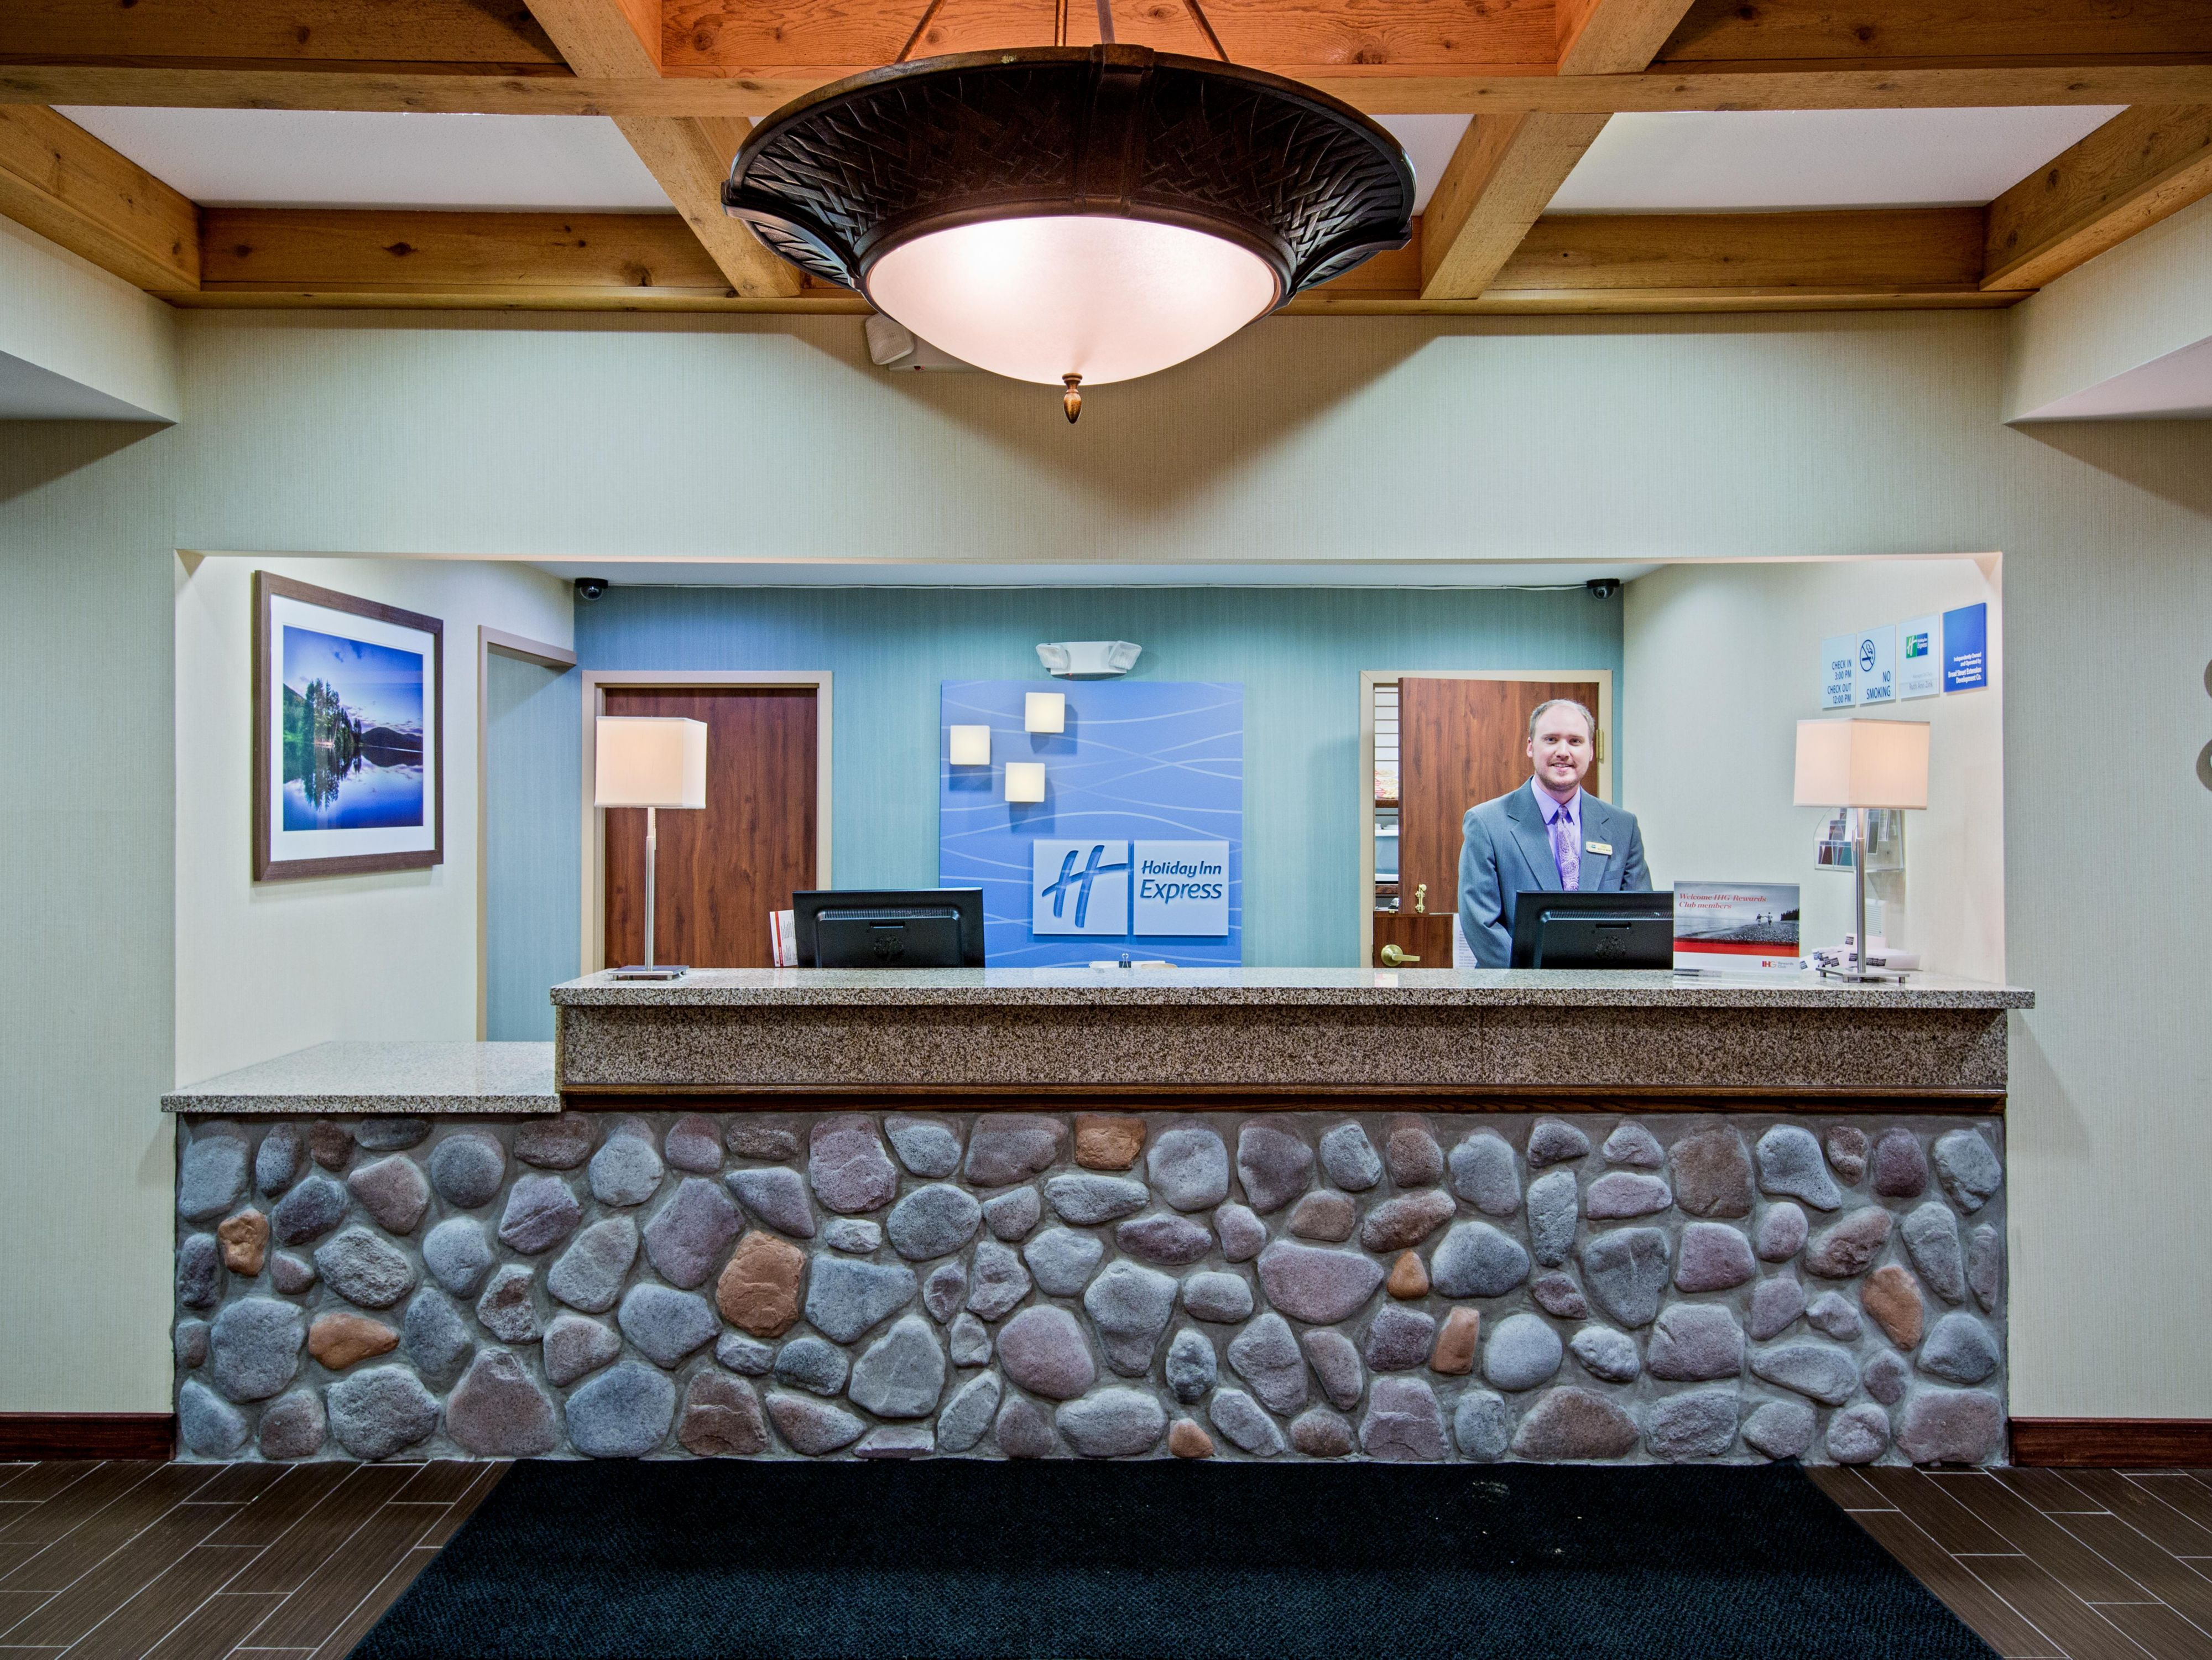 Our Front Desk staff is here to assist you!